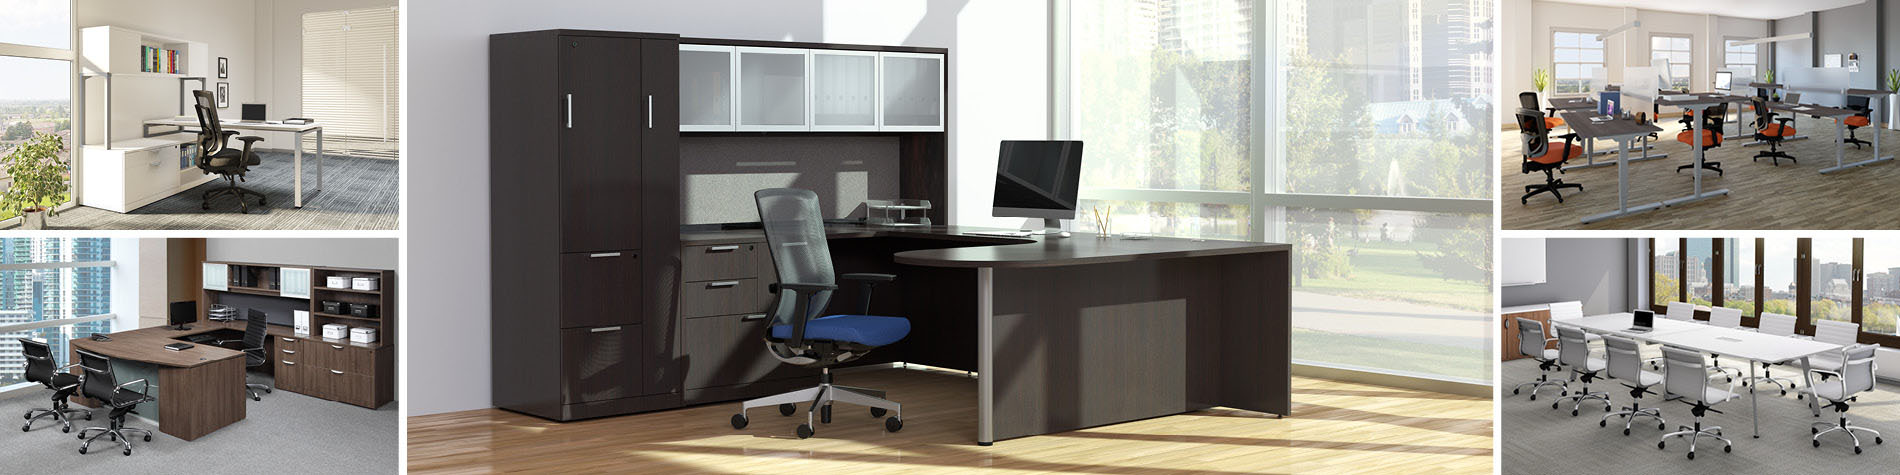 Performance Office Furnishings